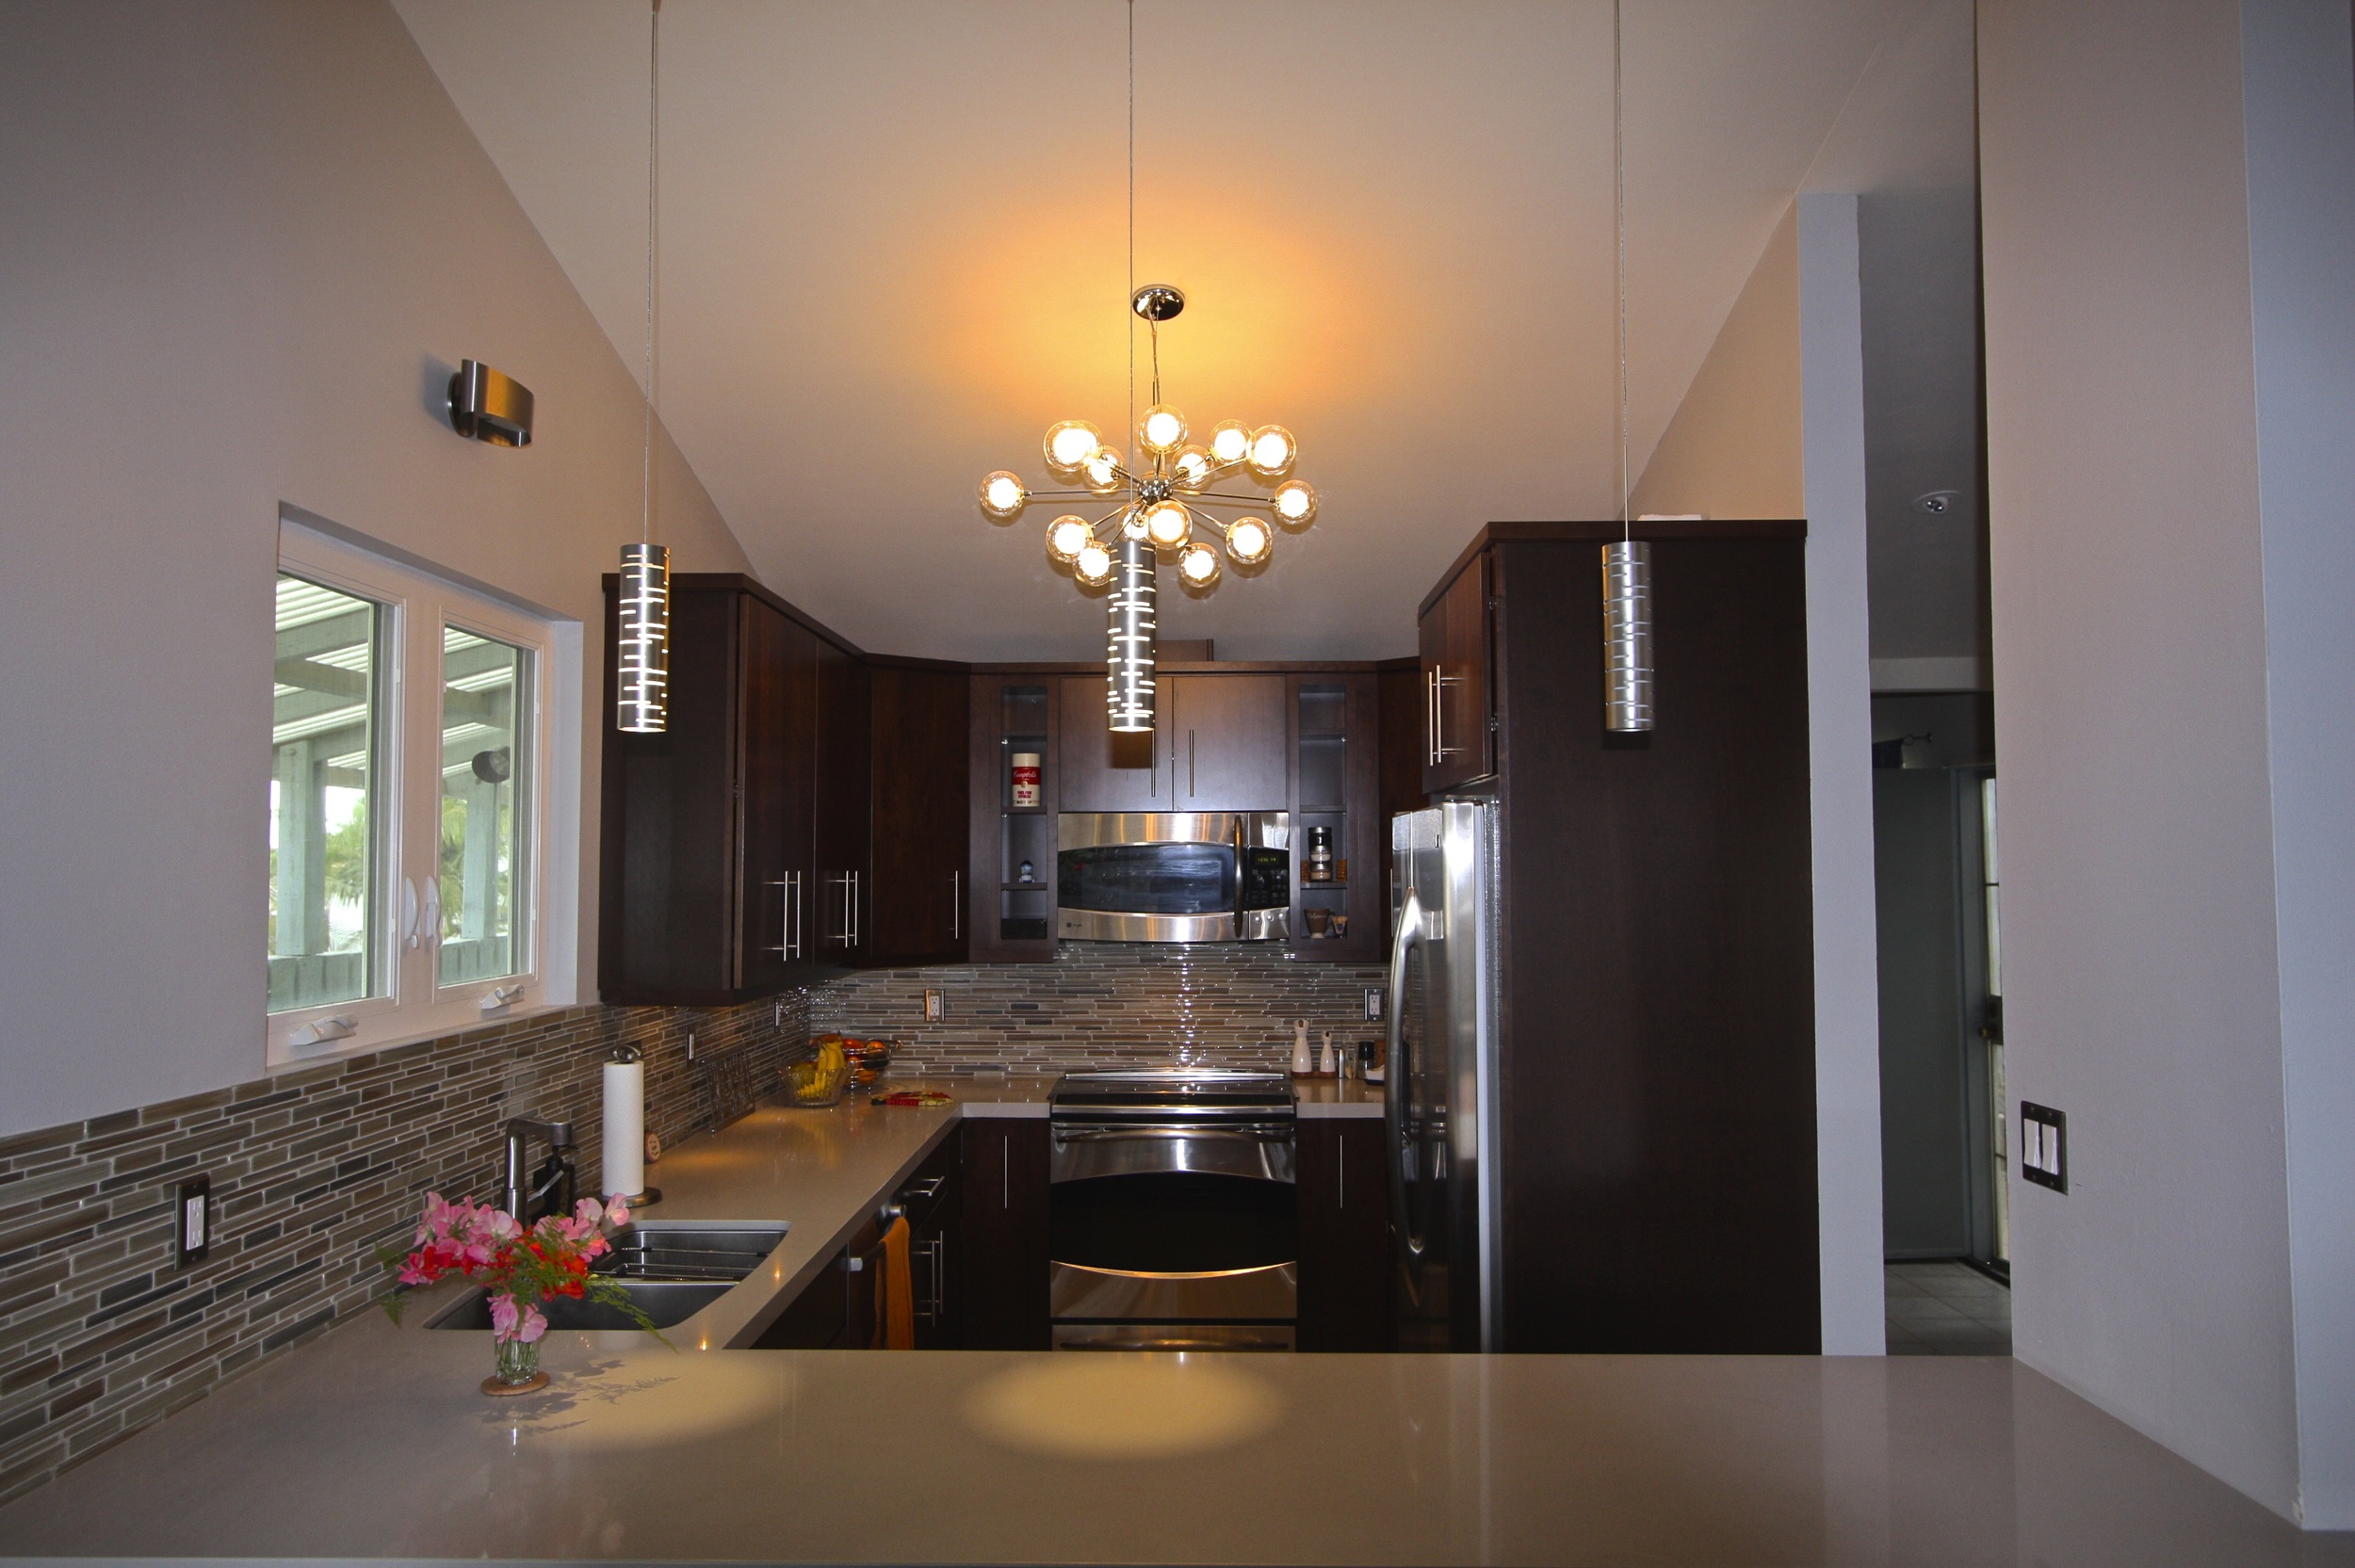 EAB Contemporary Kitchen Remodel 4.jpg